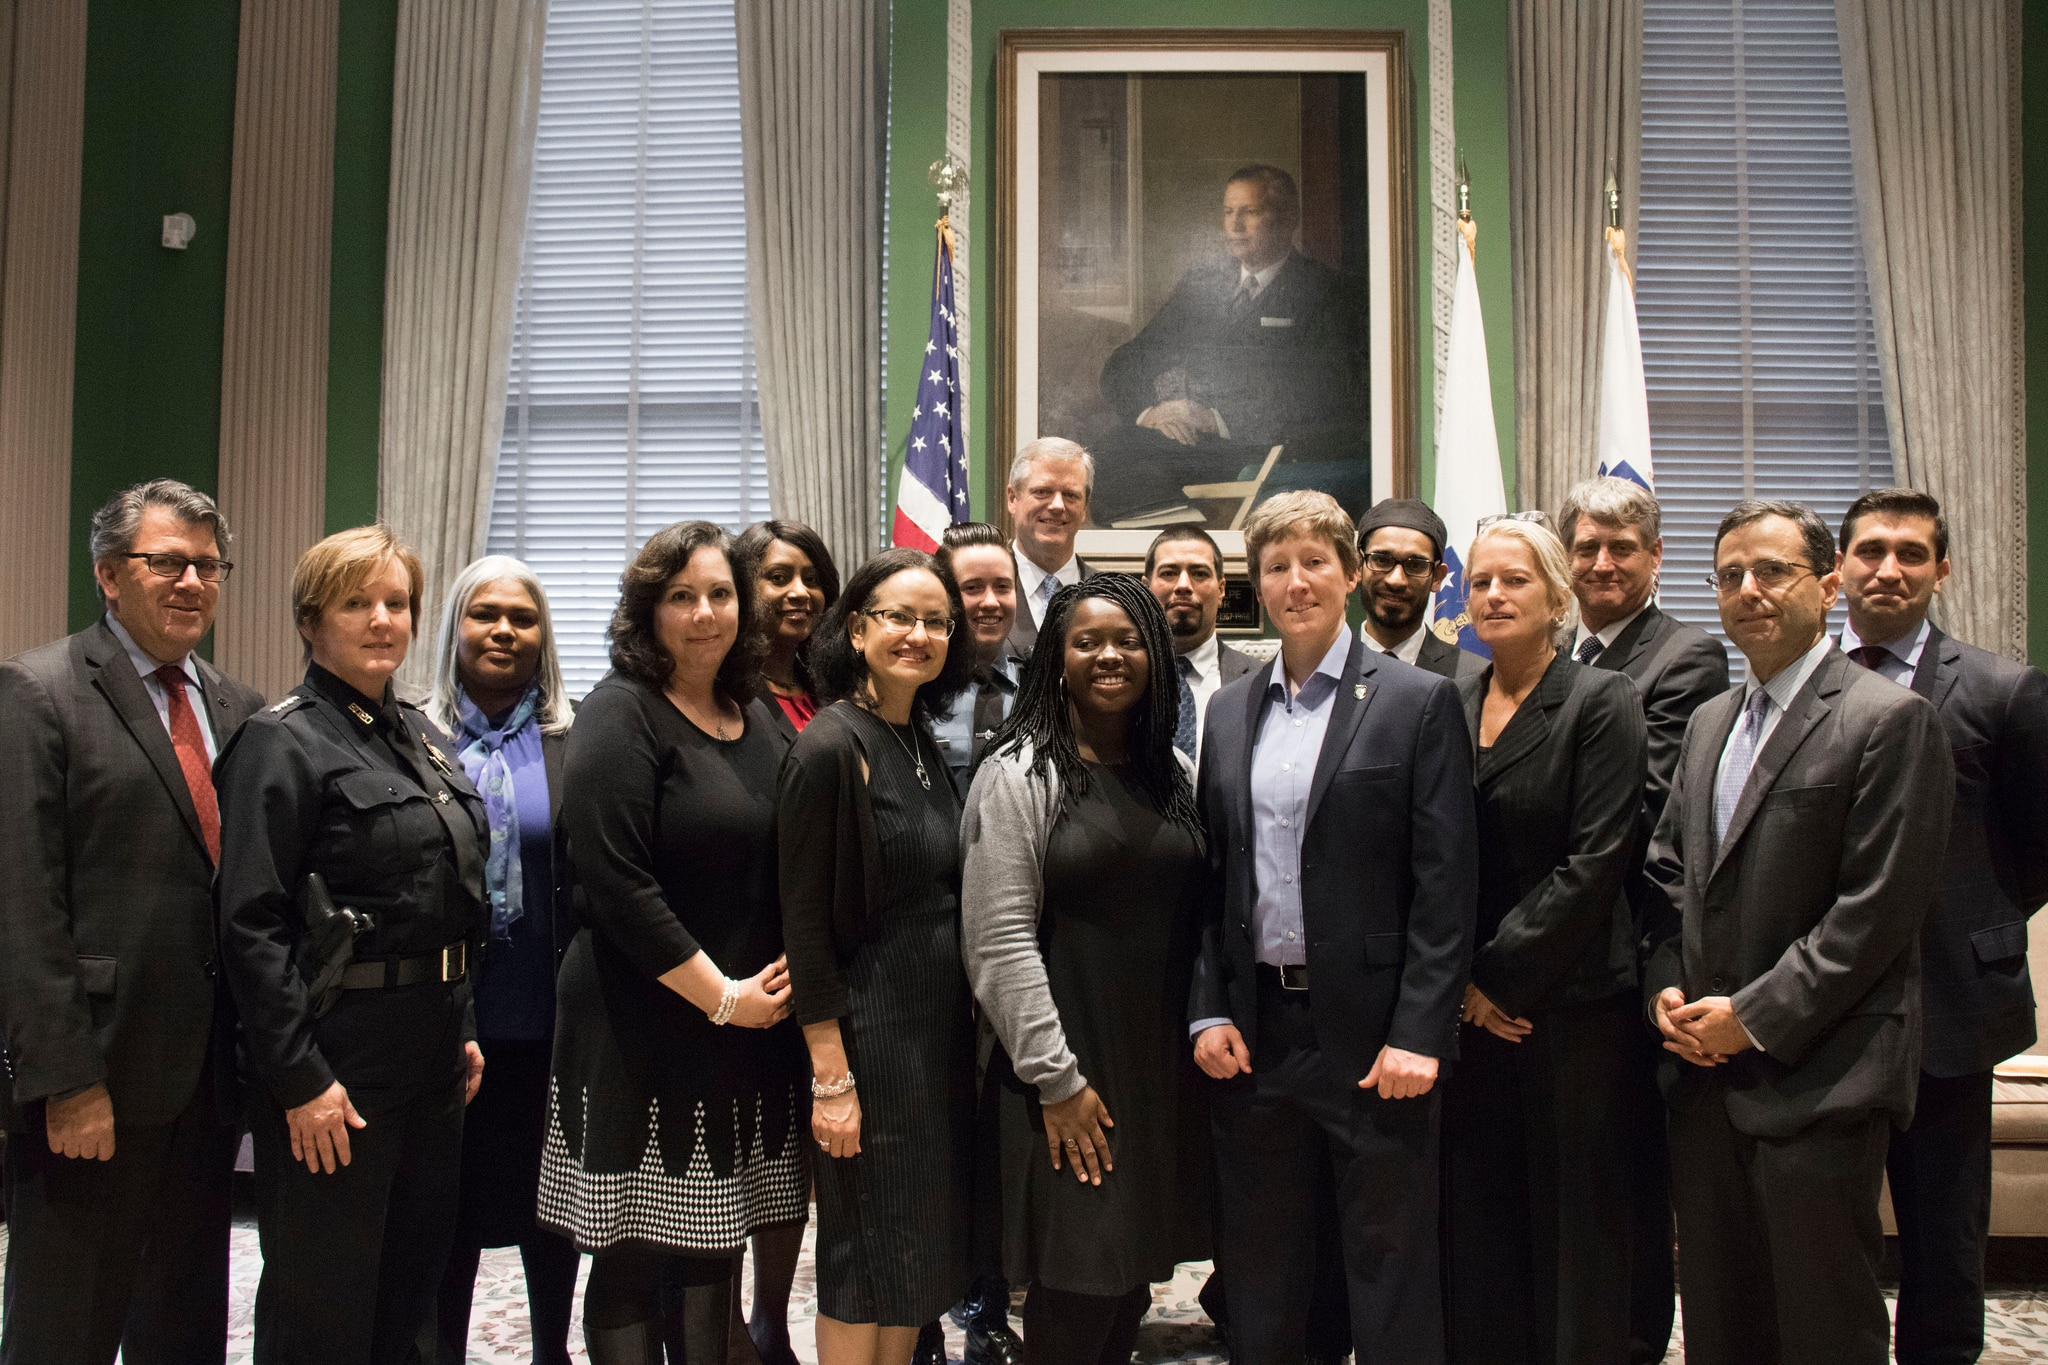 Governor Baker with members of the Governor's Task Force on Hate Crimes.